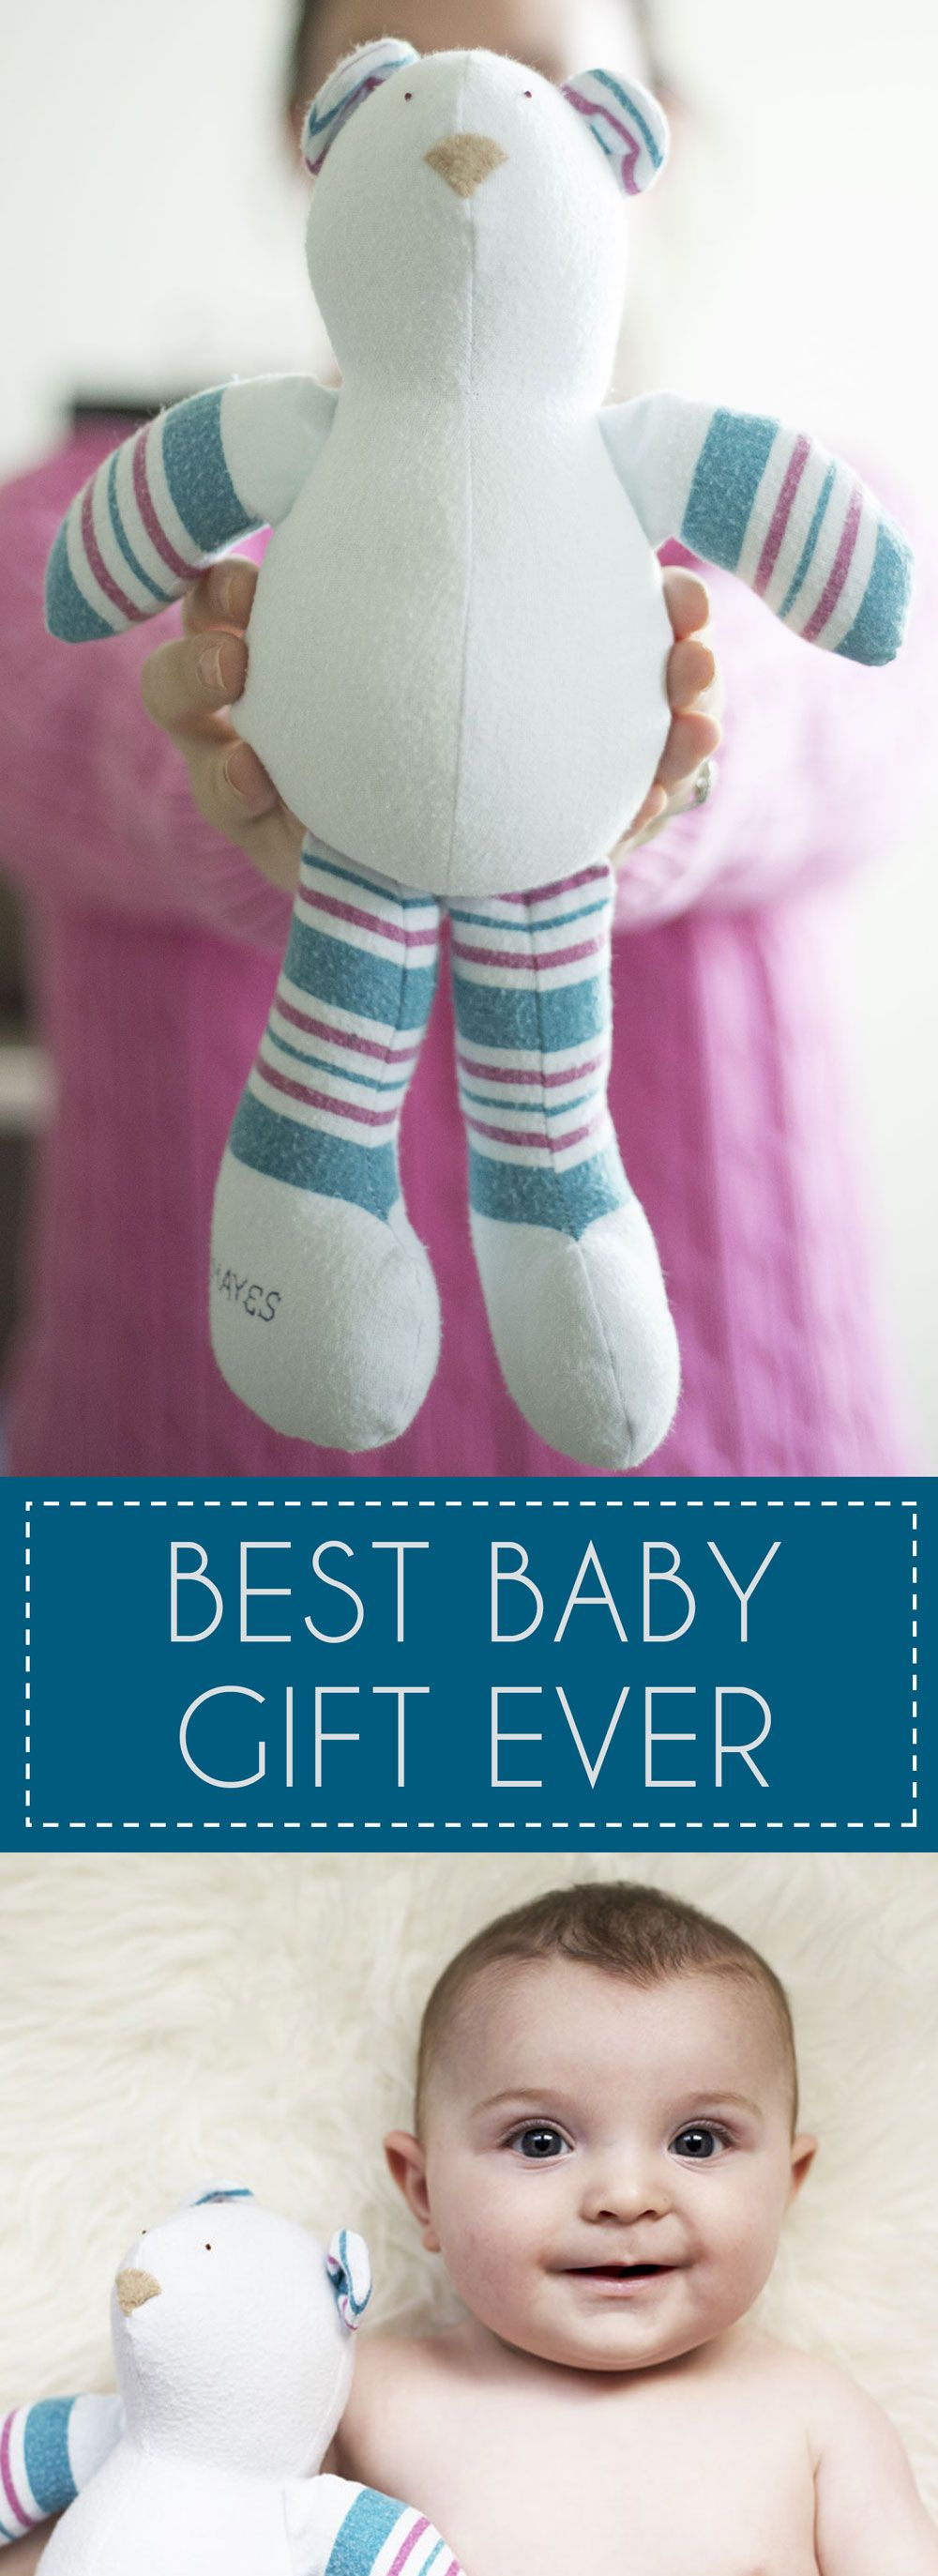 Best baby gift ever baby boy gifts best baby gifts new